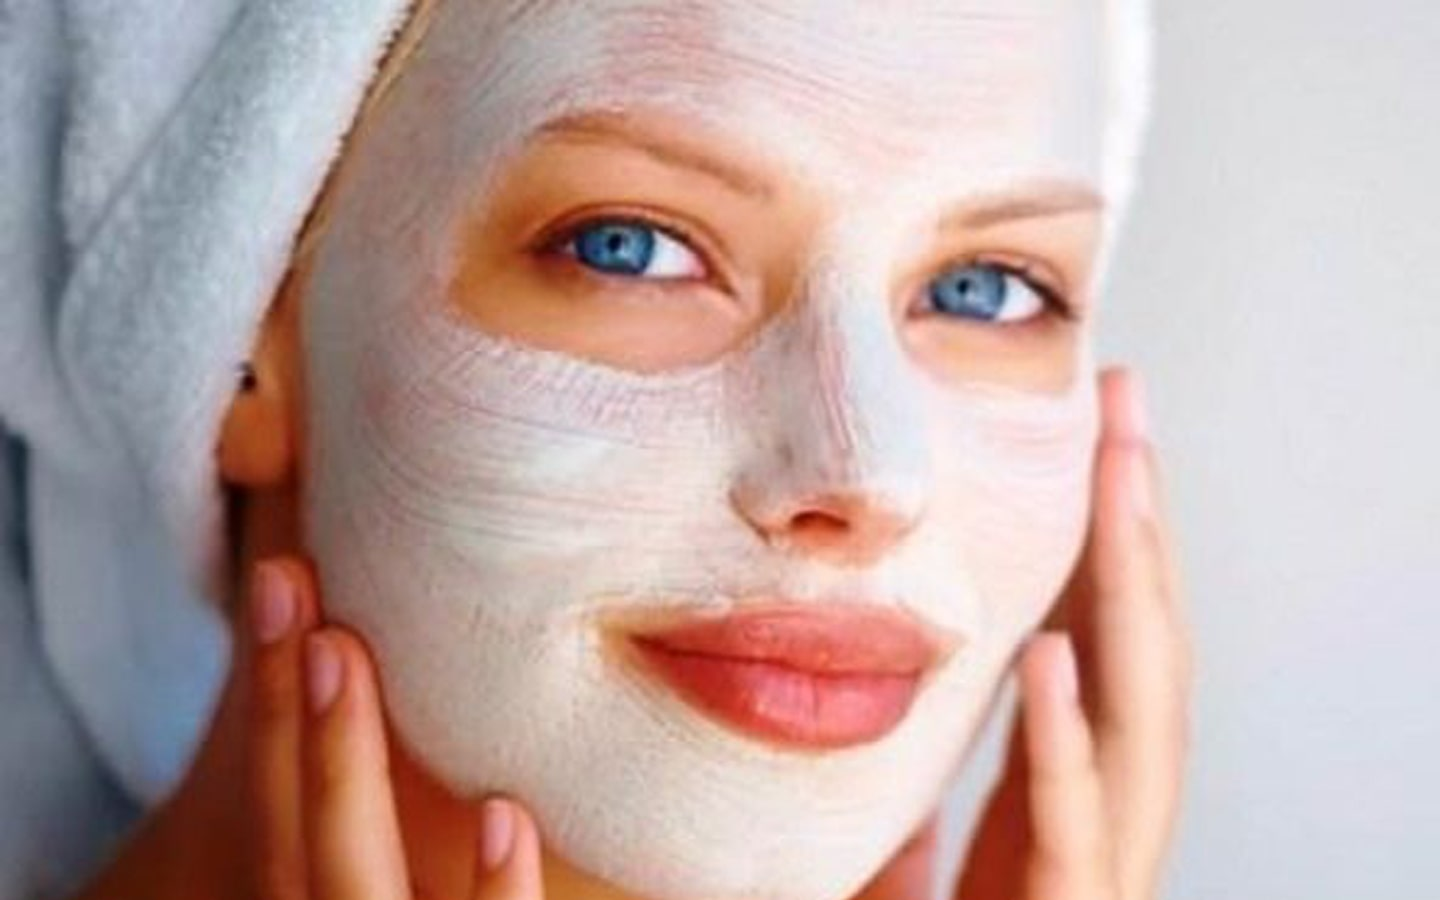 Home masks for men and women.